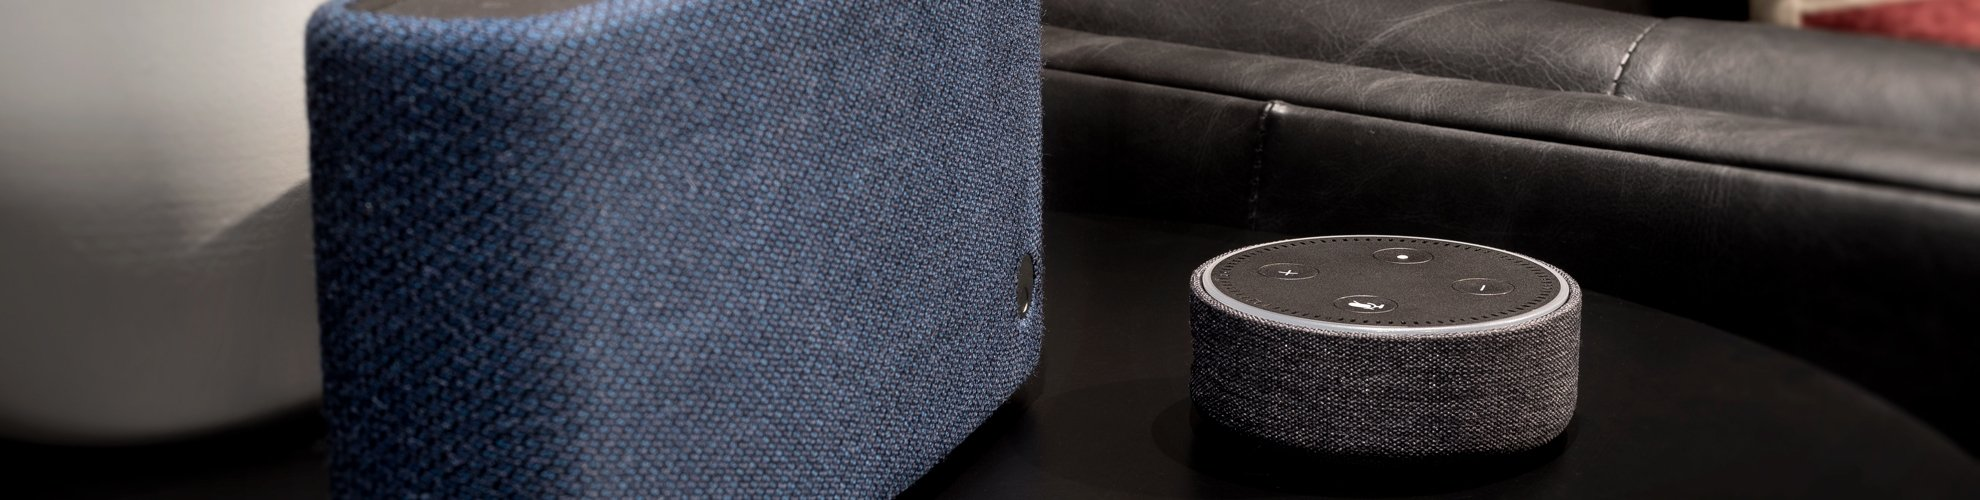 Voice Controlled Speakers – Enhancing your Bluetooth and Home Speakers